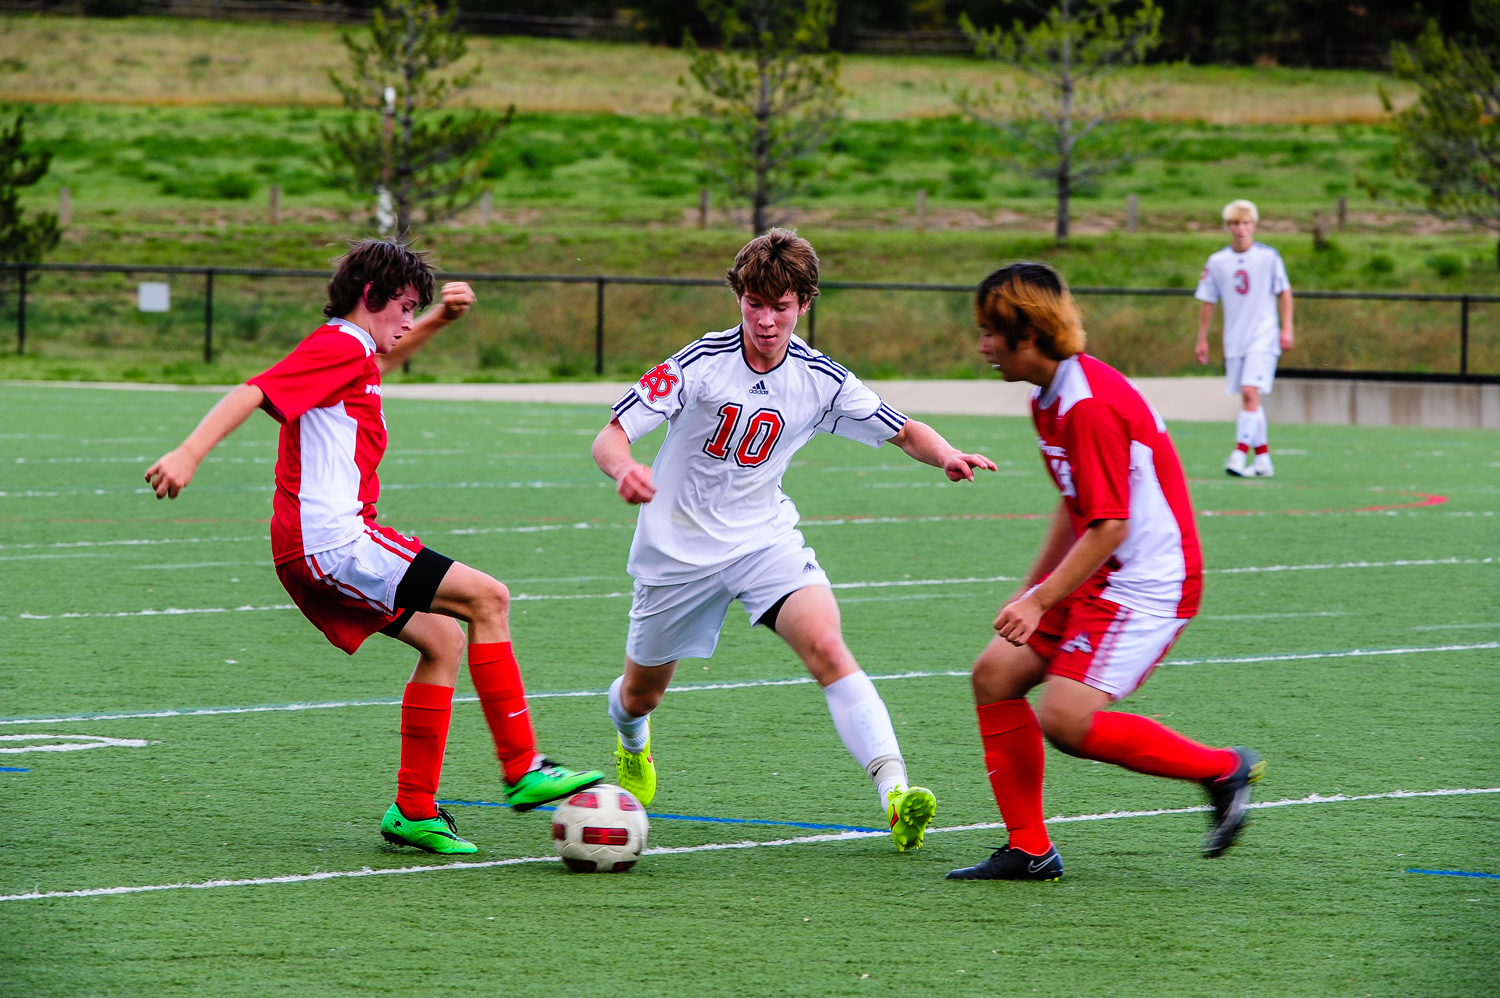 Fountain Valley Kent Denver Boys Soccer | Chsaanow Within Fountain Valley Hs Holiday Schedule